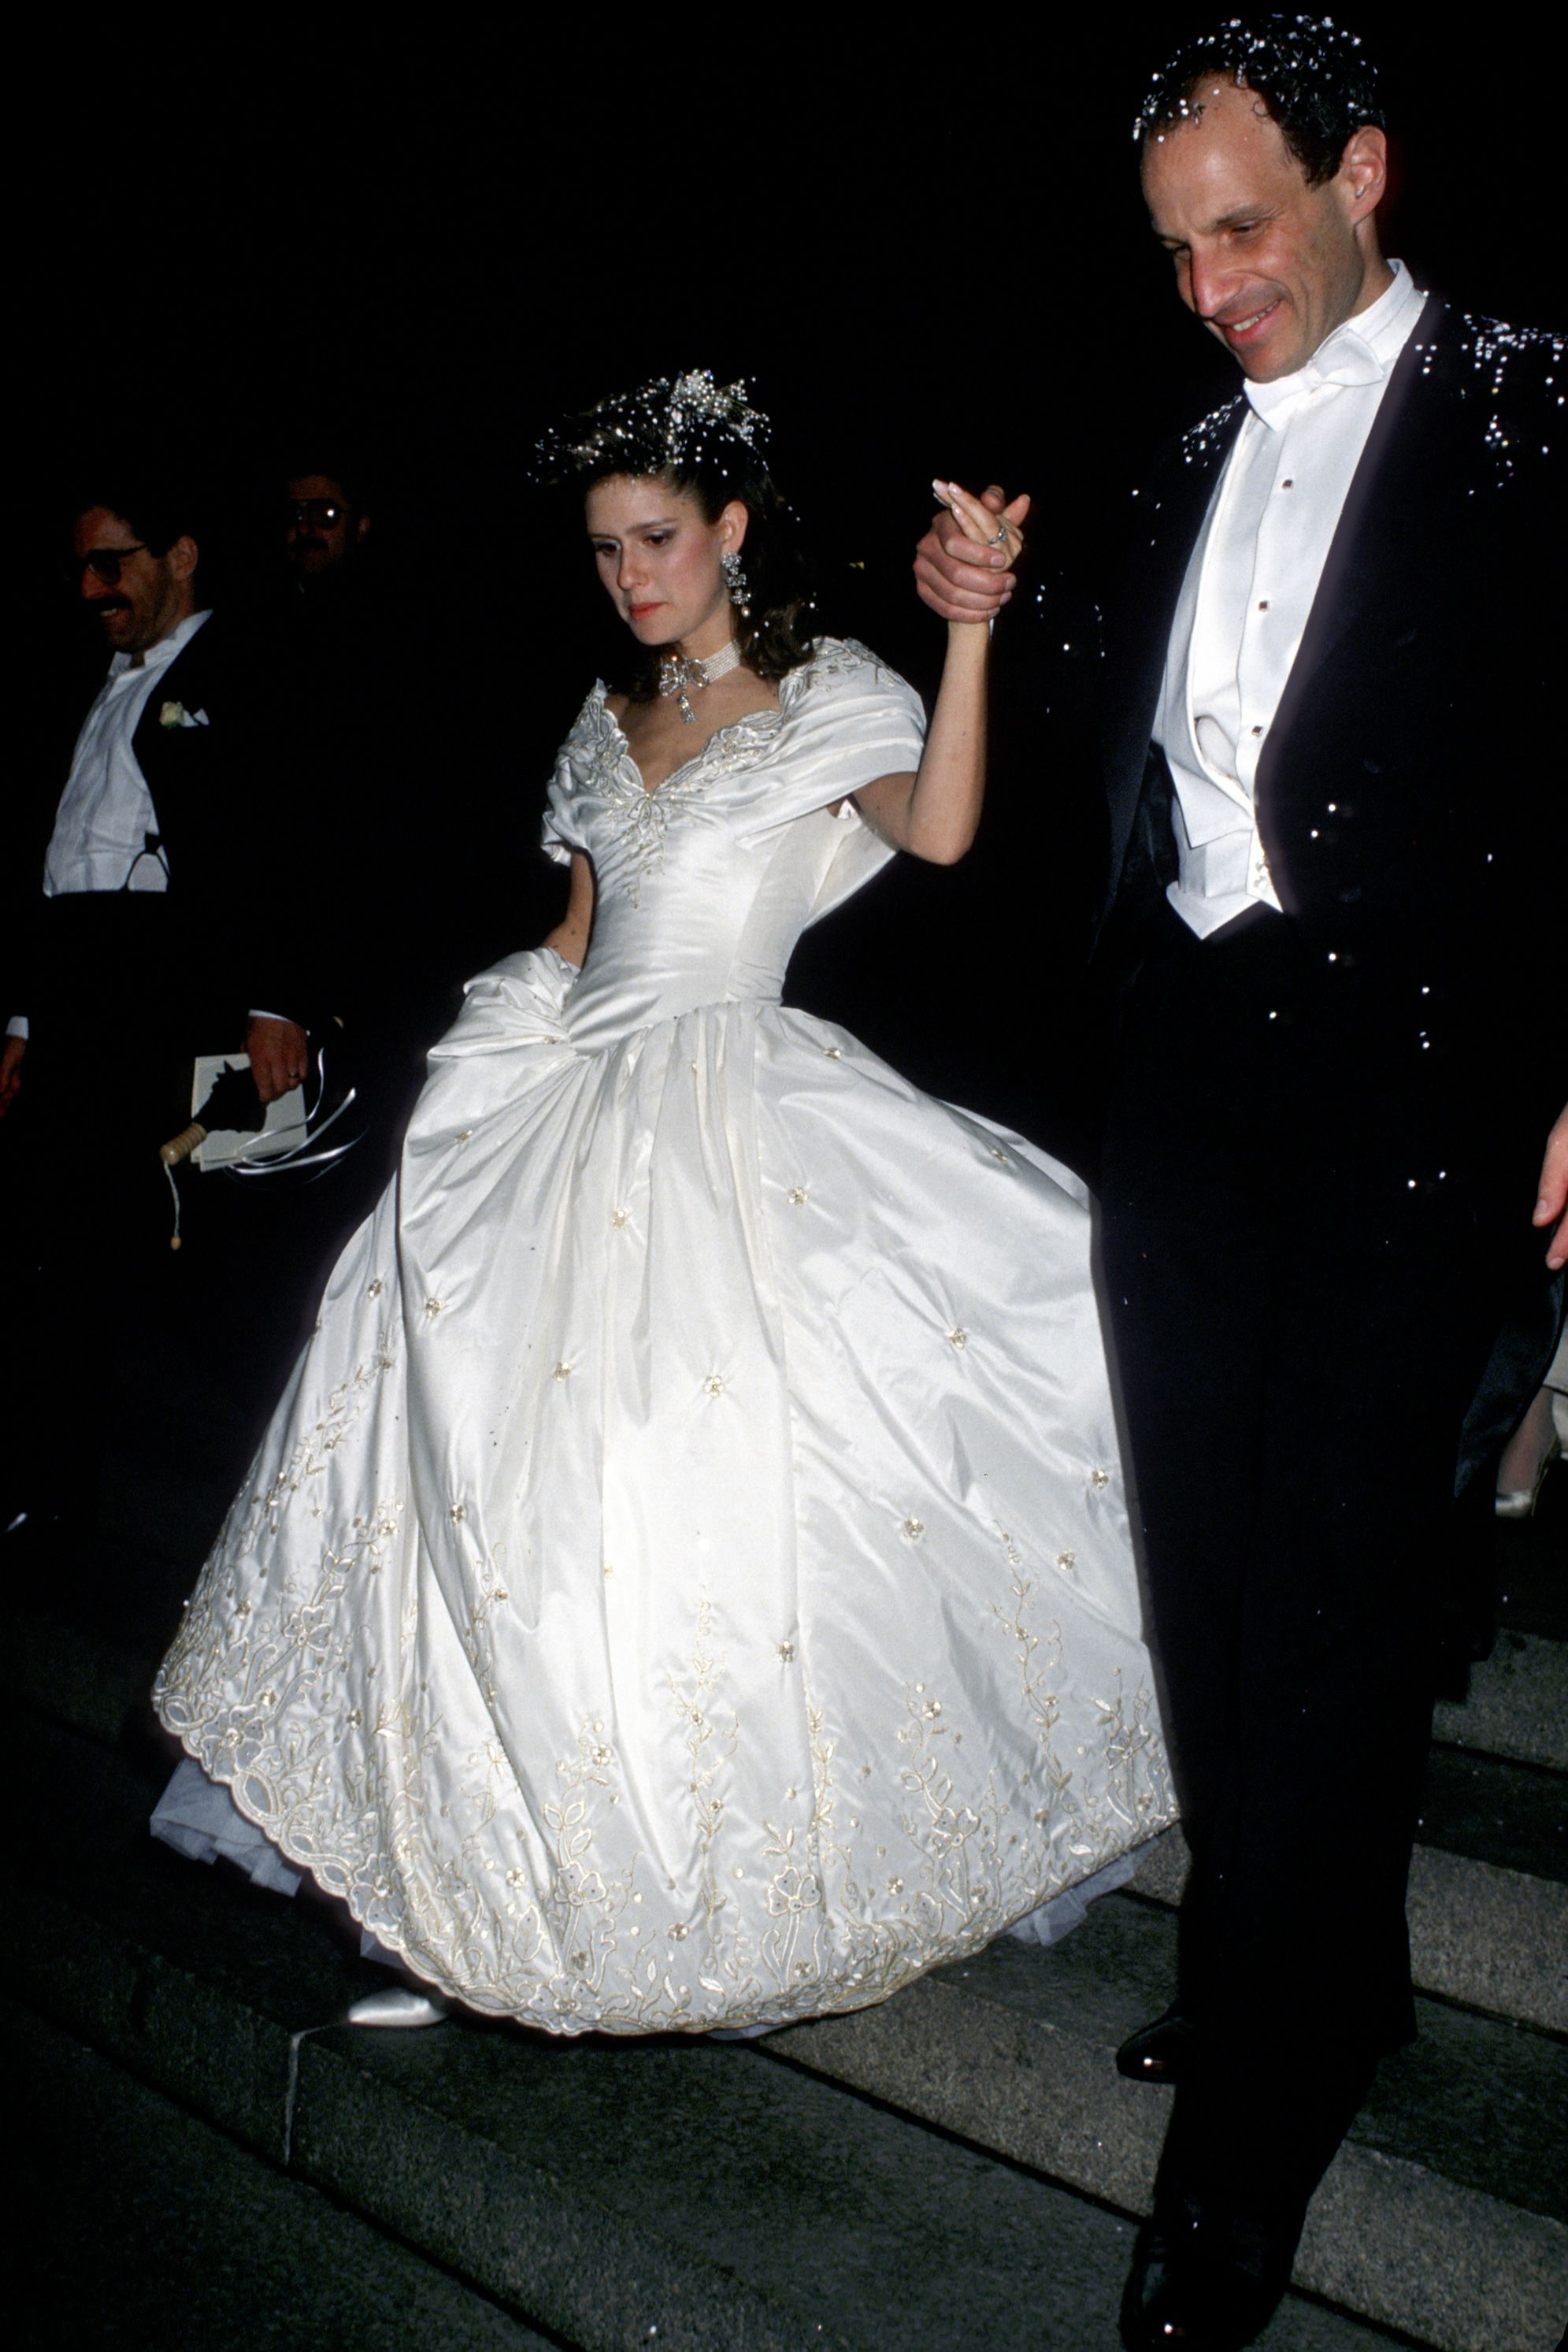 Laura Steinberg's Wedding Dress Jonathan Tisch and Laura Steinberg married in 1988 at the Central Synagogue in NYC. Their wedding made the pages of The New York Times , obviously, though the couple later divorced.